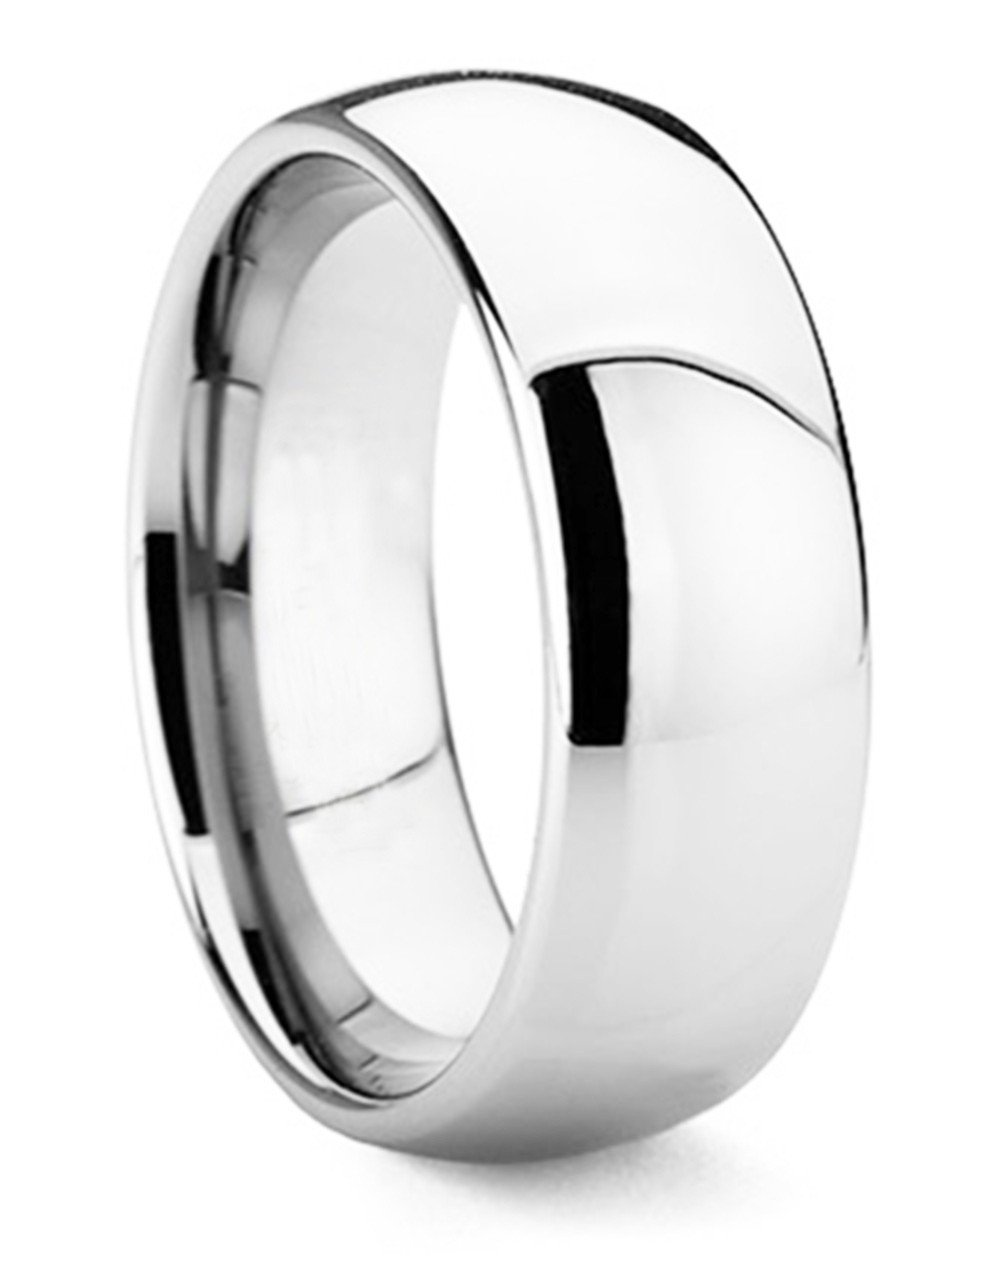 King Will Basic Men's 8mm Classic High Polished Comfort Fit Domed Tungsten Metal Ring Wedding Band(9)